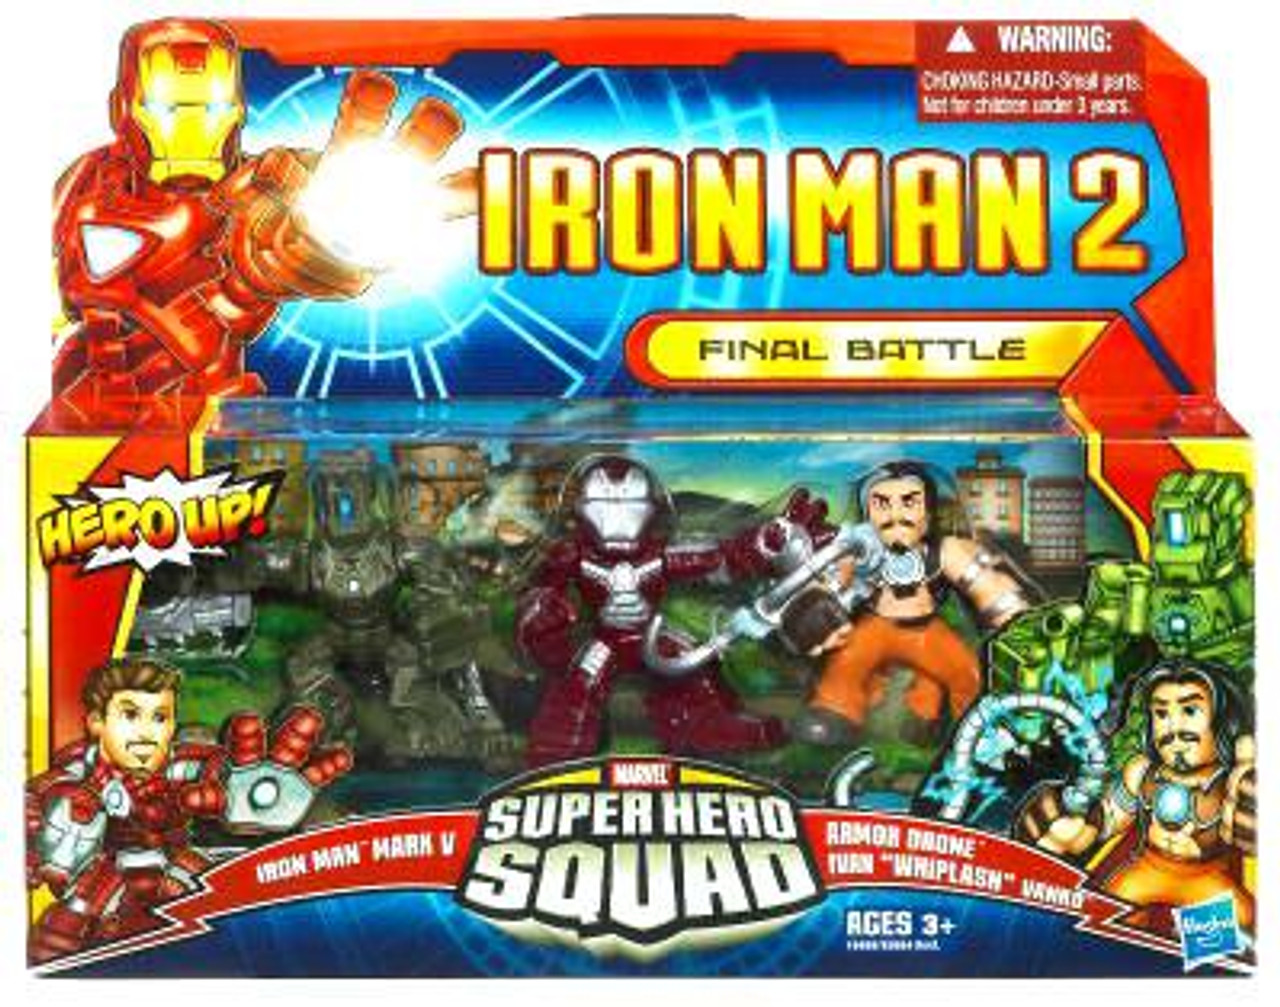 Iron Man 2 Superhero Squad Final Battle Action Figure 3-Pack